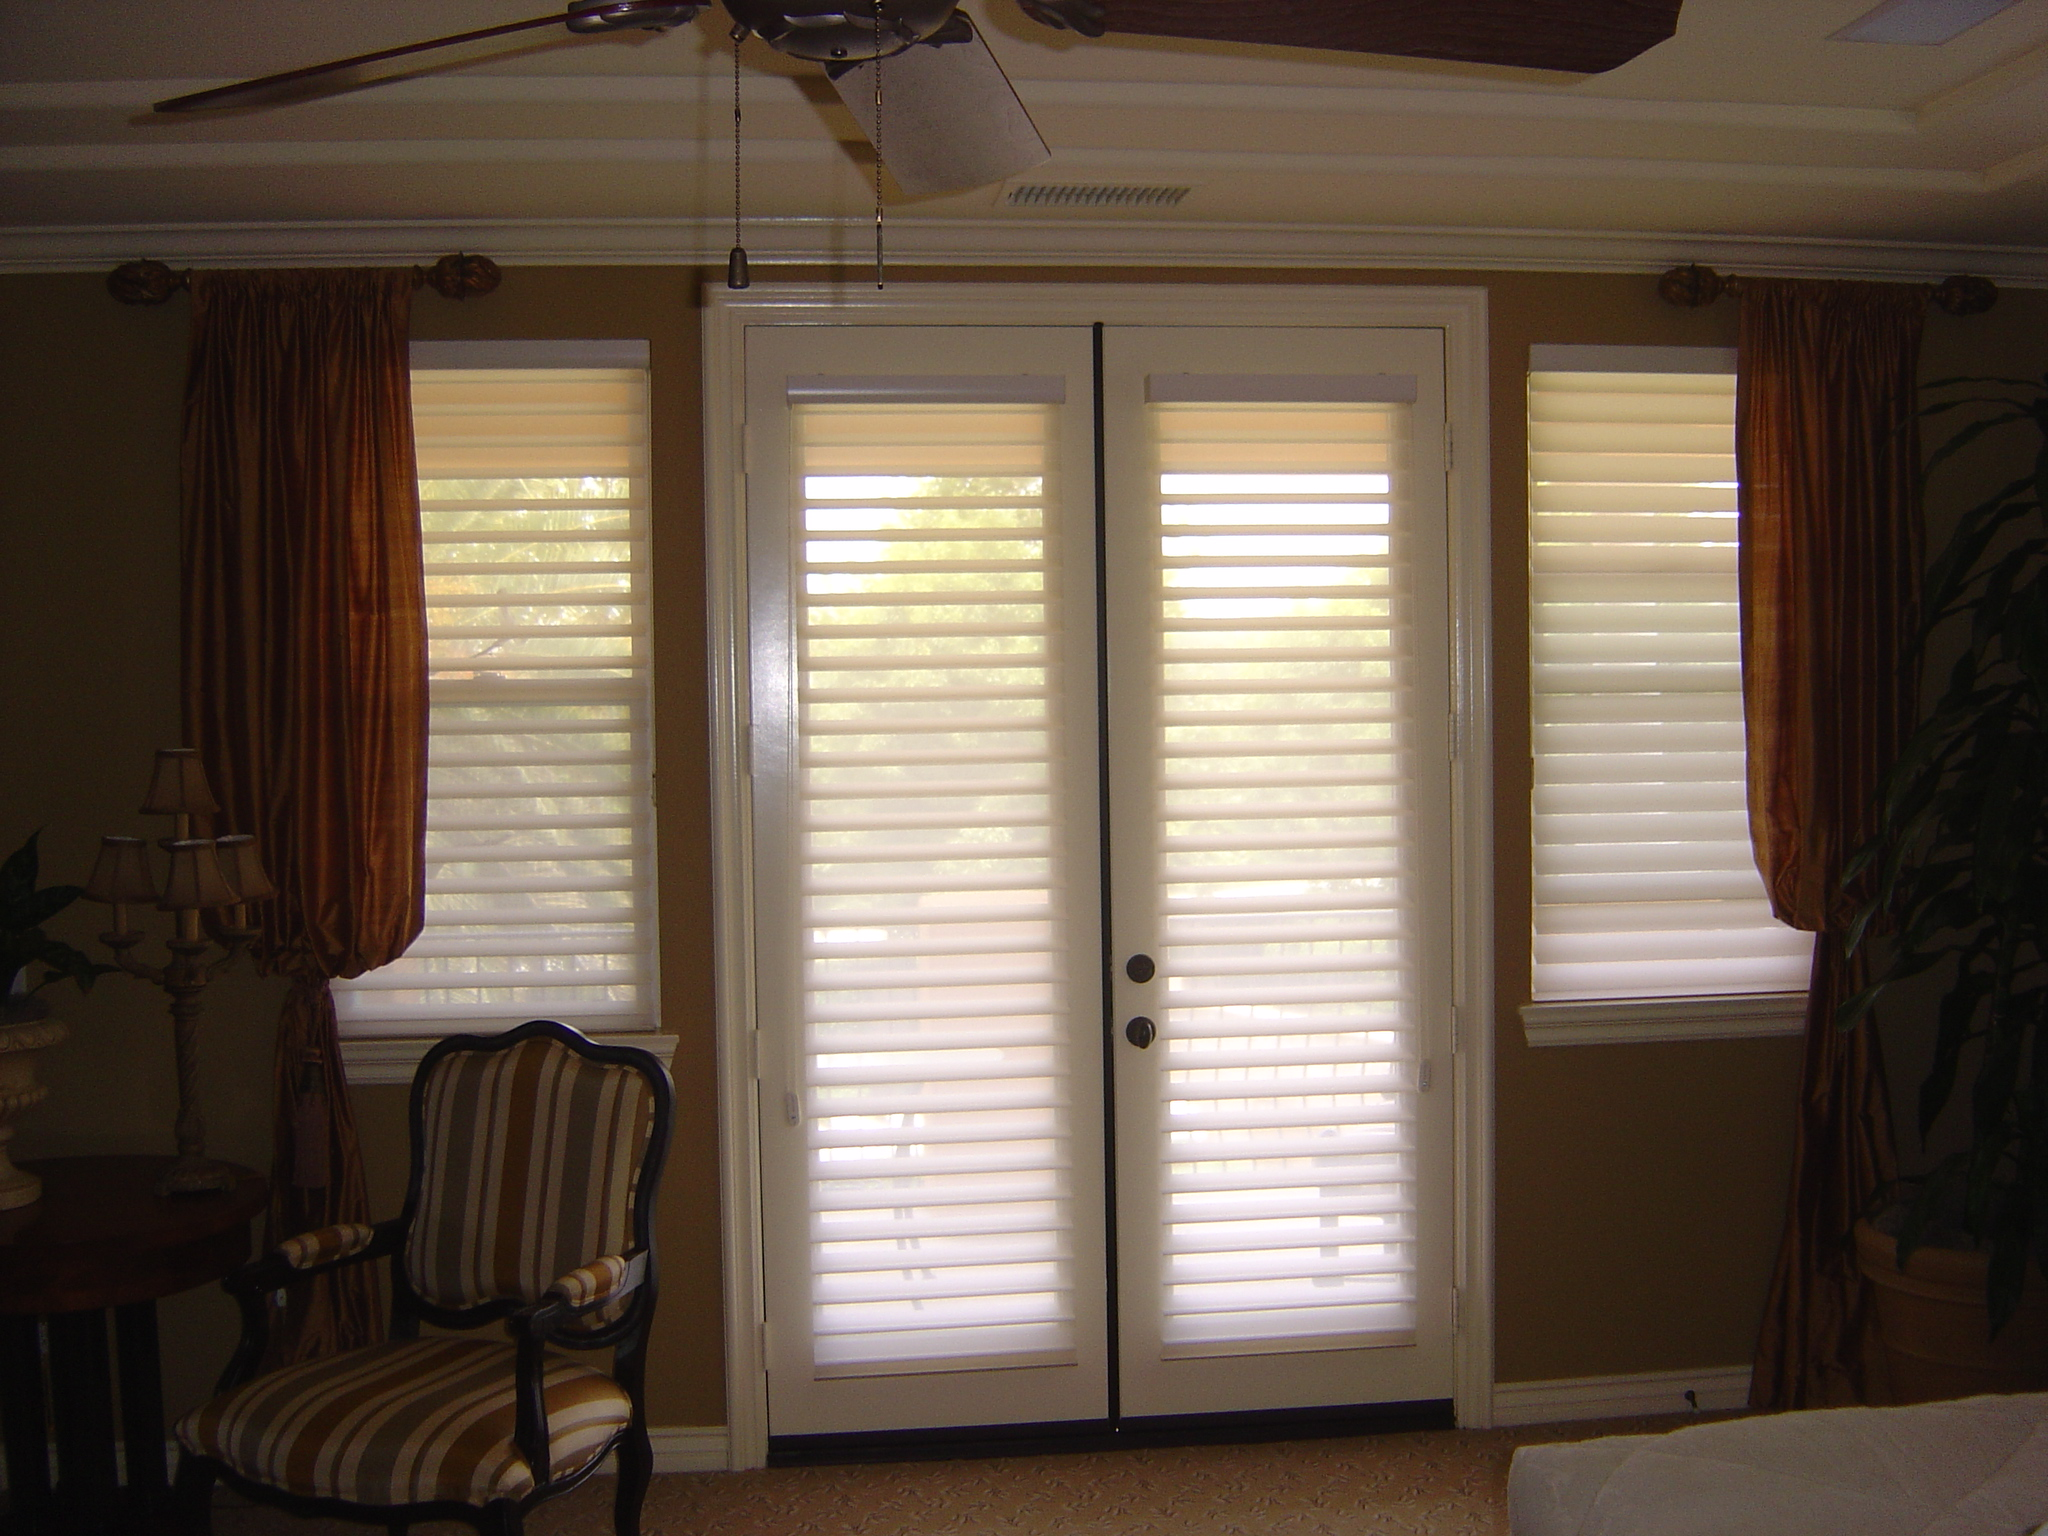 Ideas To Cover Sliding Glass Doors window covering ideas inspiration polywood shutters for sliding glass door Window Treatment Ideas For Doors 3 Blind Mice